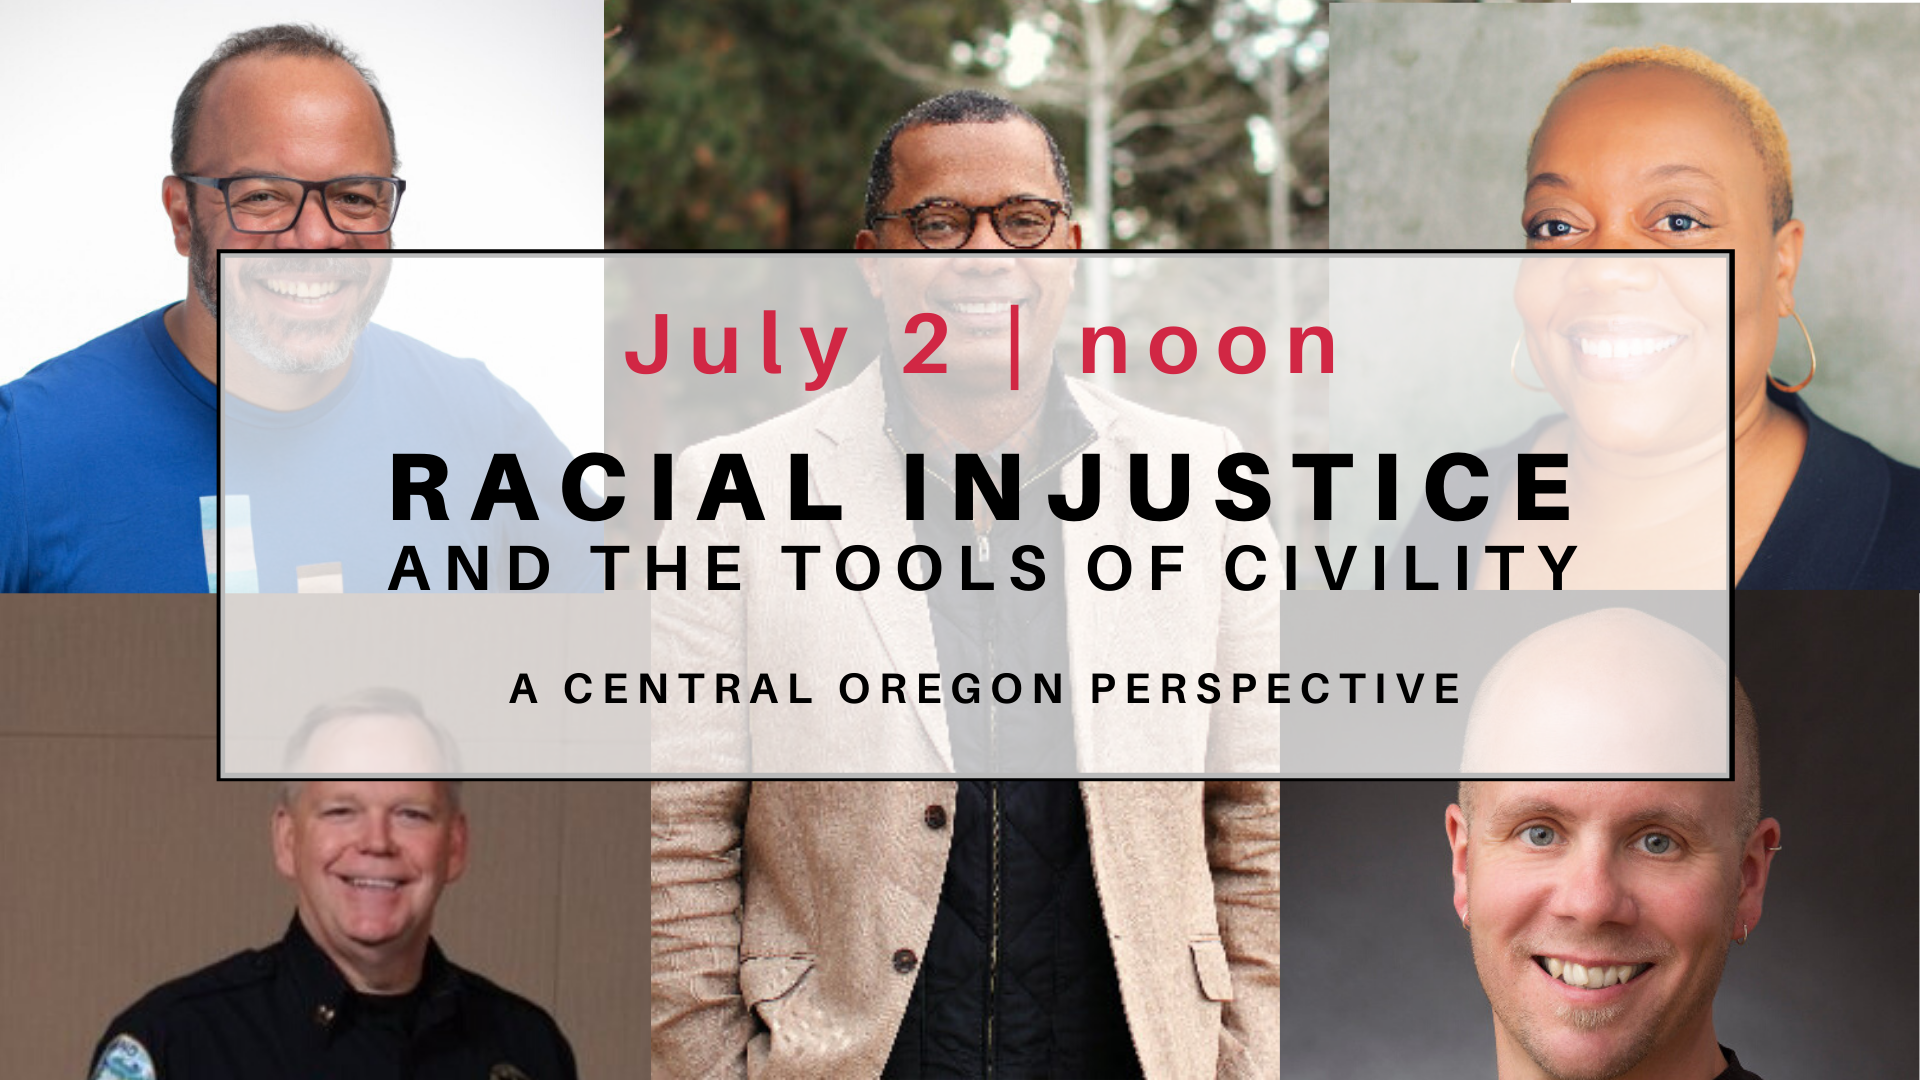 Reflections | July 2 Racial Injustice and the Tools of Civility